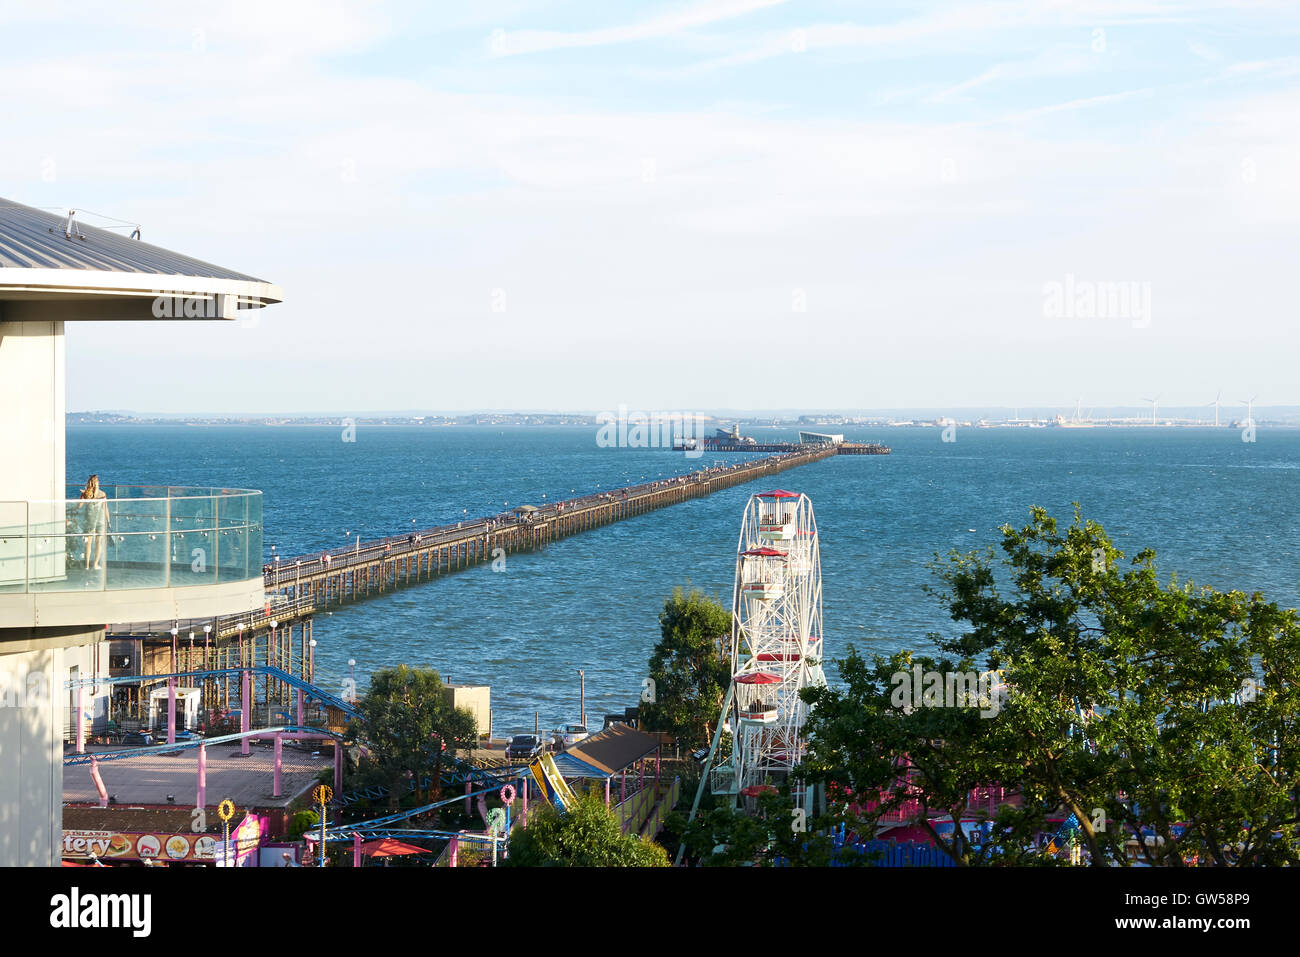 Southend On Sea, Essex, UK. End of 2016 Summer - Stock Image